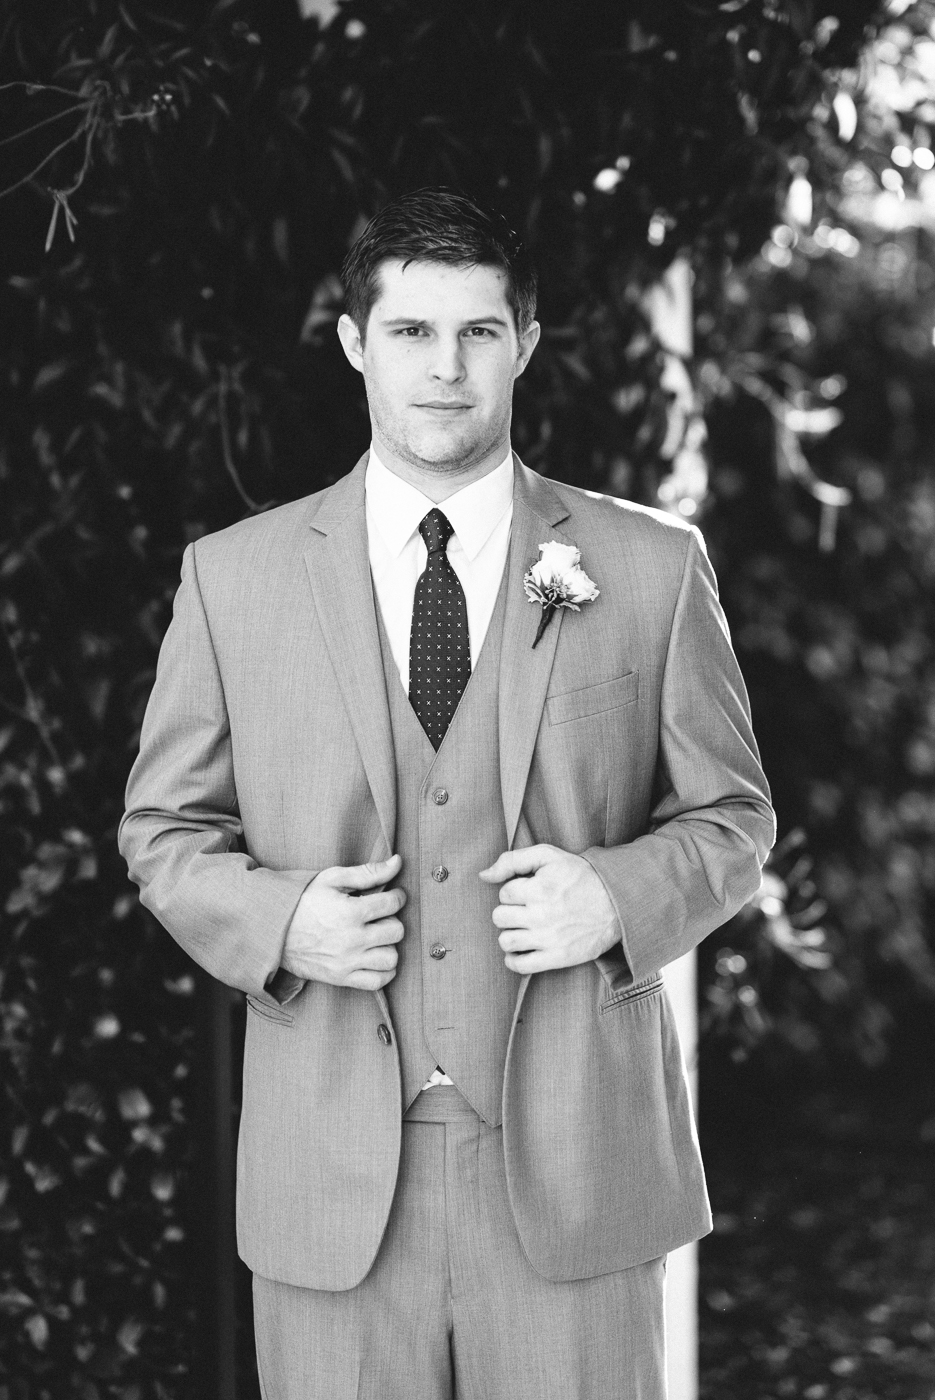 dapper groom suit black and white portrait